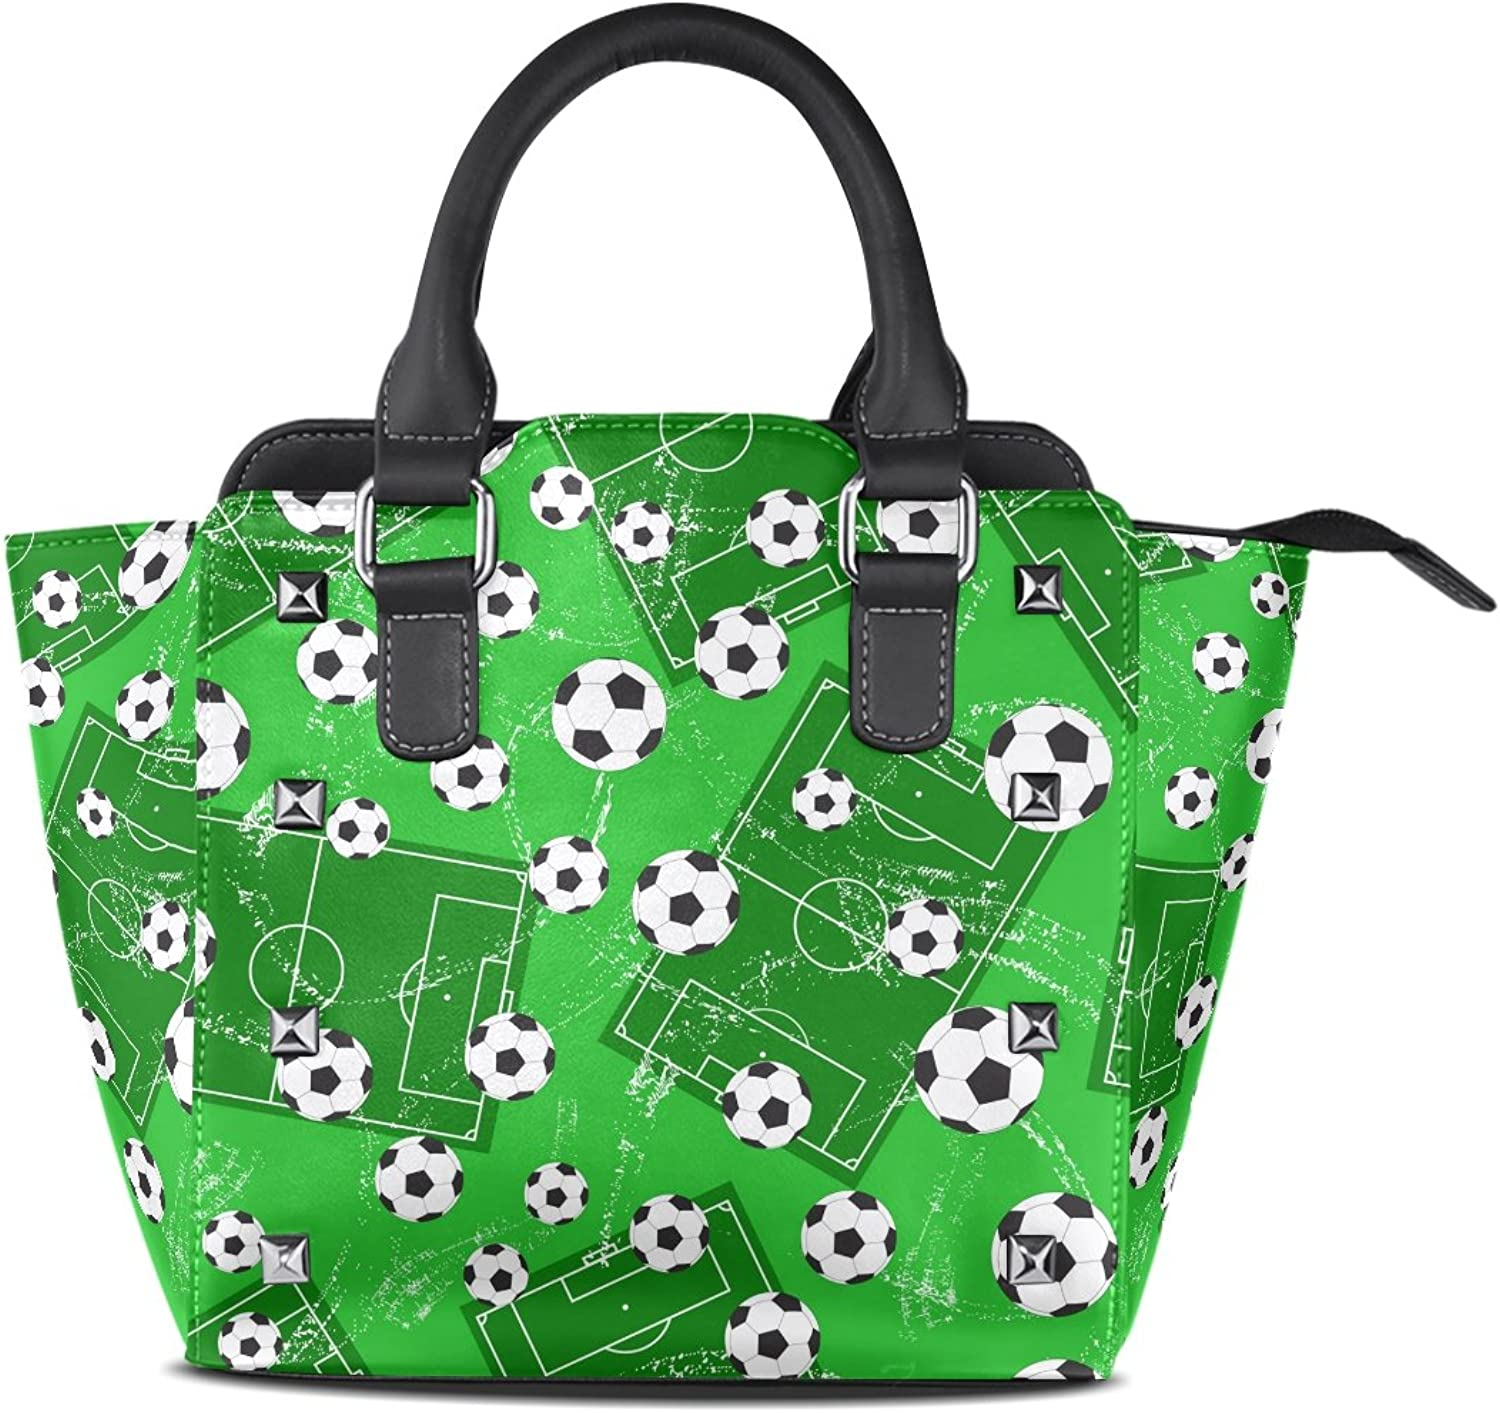 Sunlome Football Gate and Soccer Sports Ground Print Handbags Women's PU Leather Top-Handle Shoulder Bags